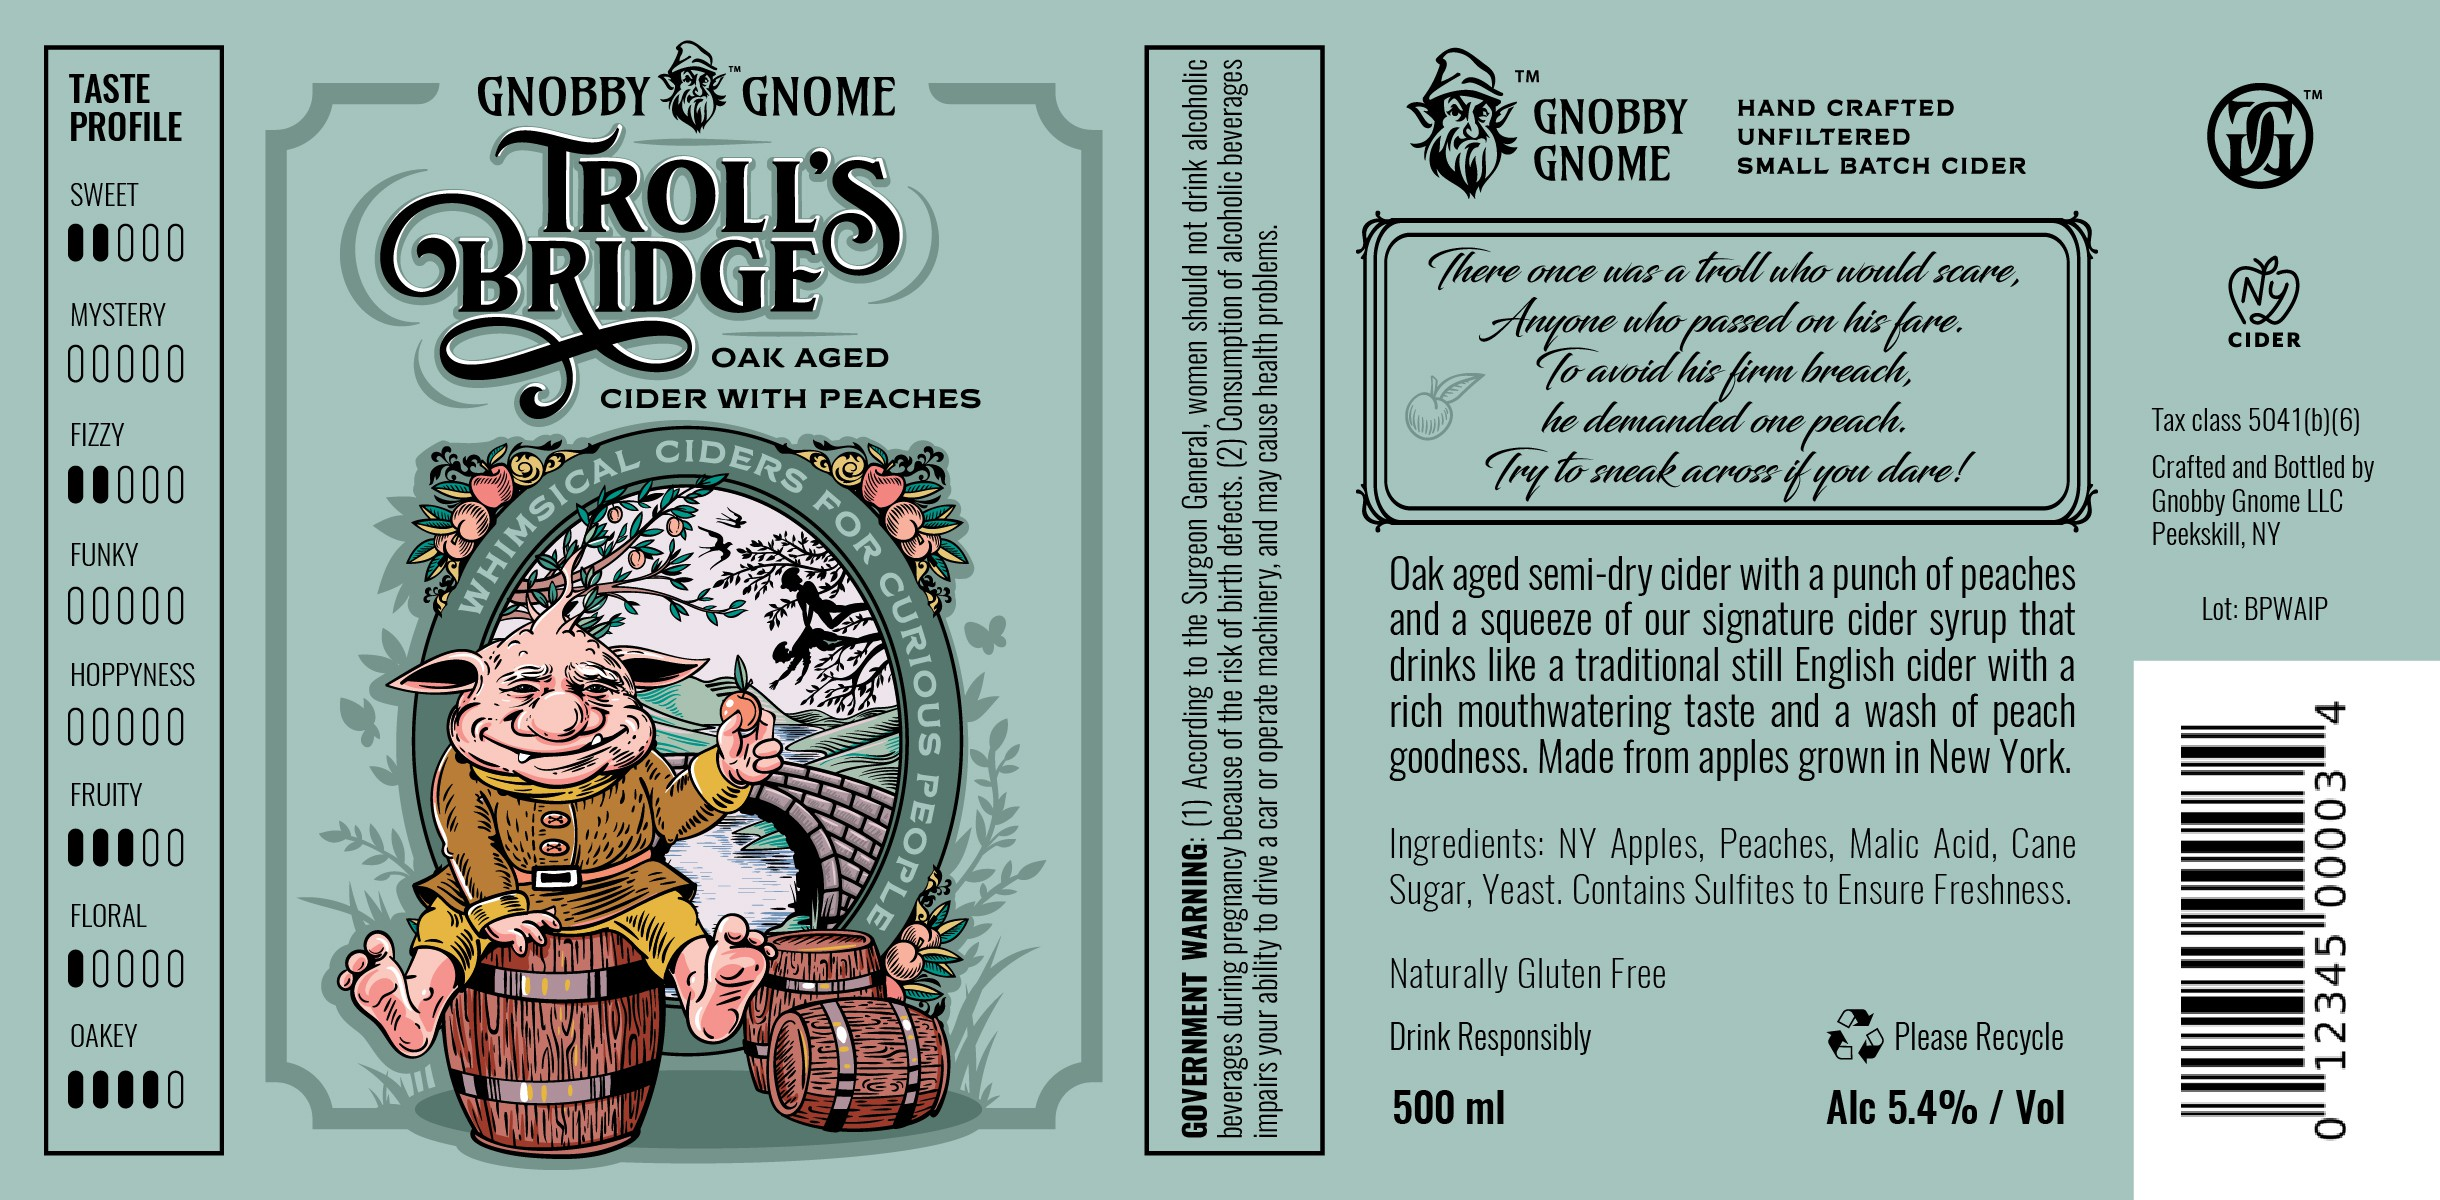 Gnobby Gnome Bottle Label Design Project